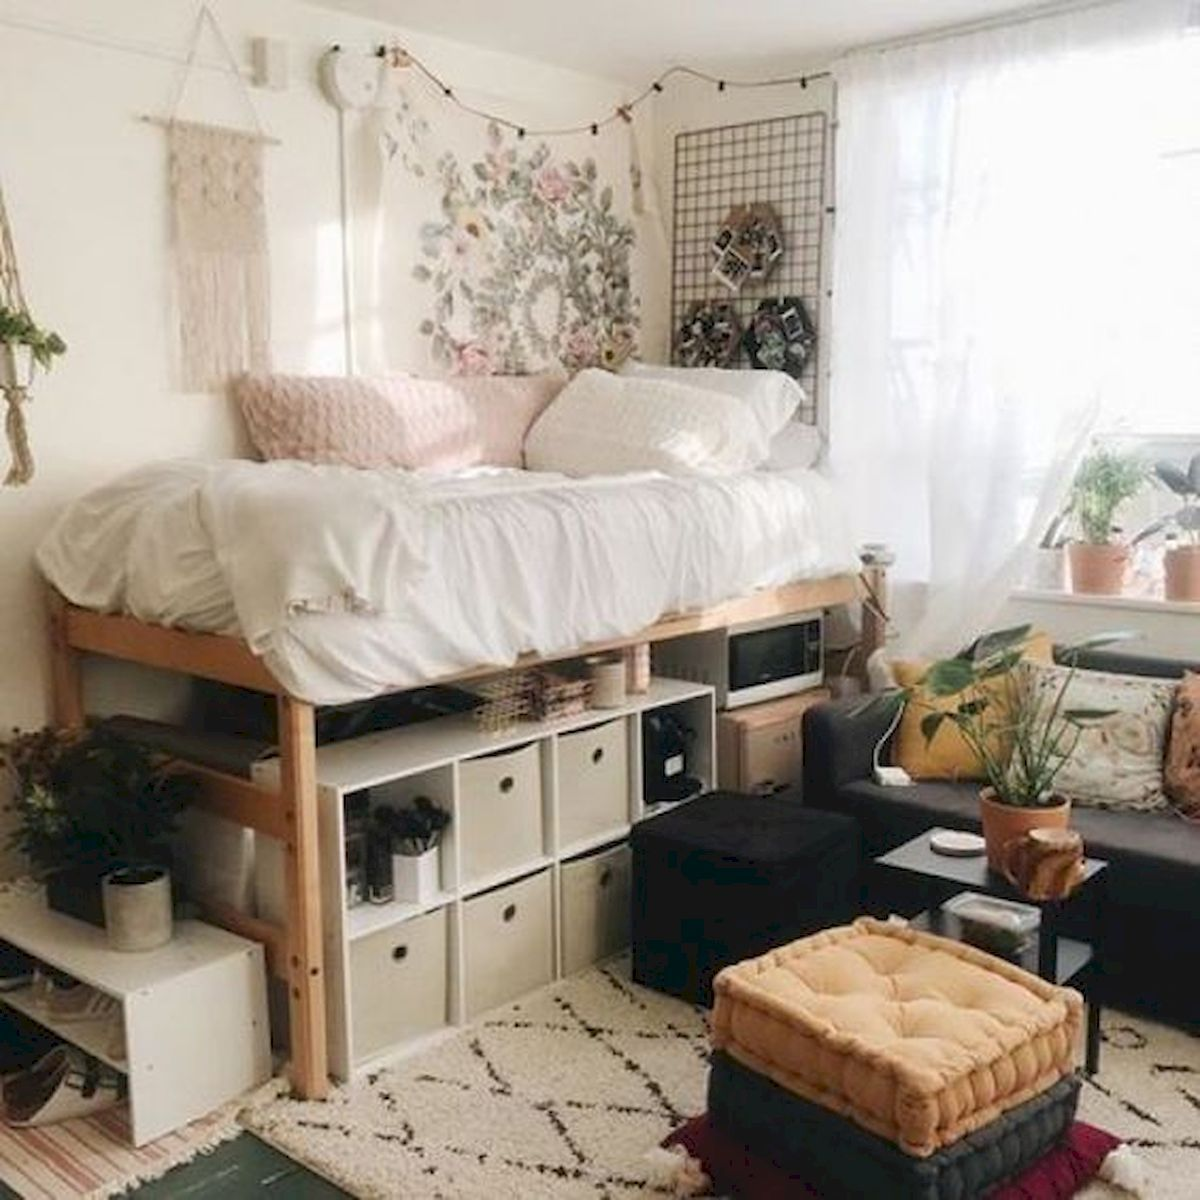 Awesome fantastic college bedroom decor ideas and remodel source https worldecor also rh pinterest